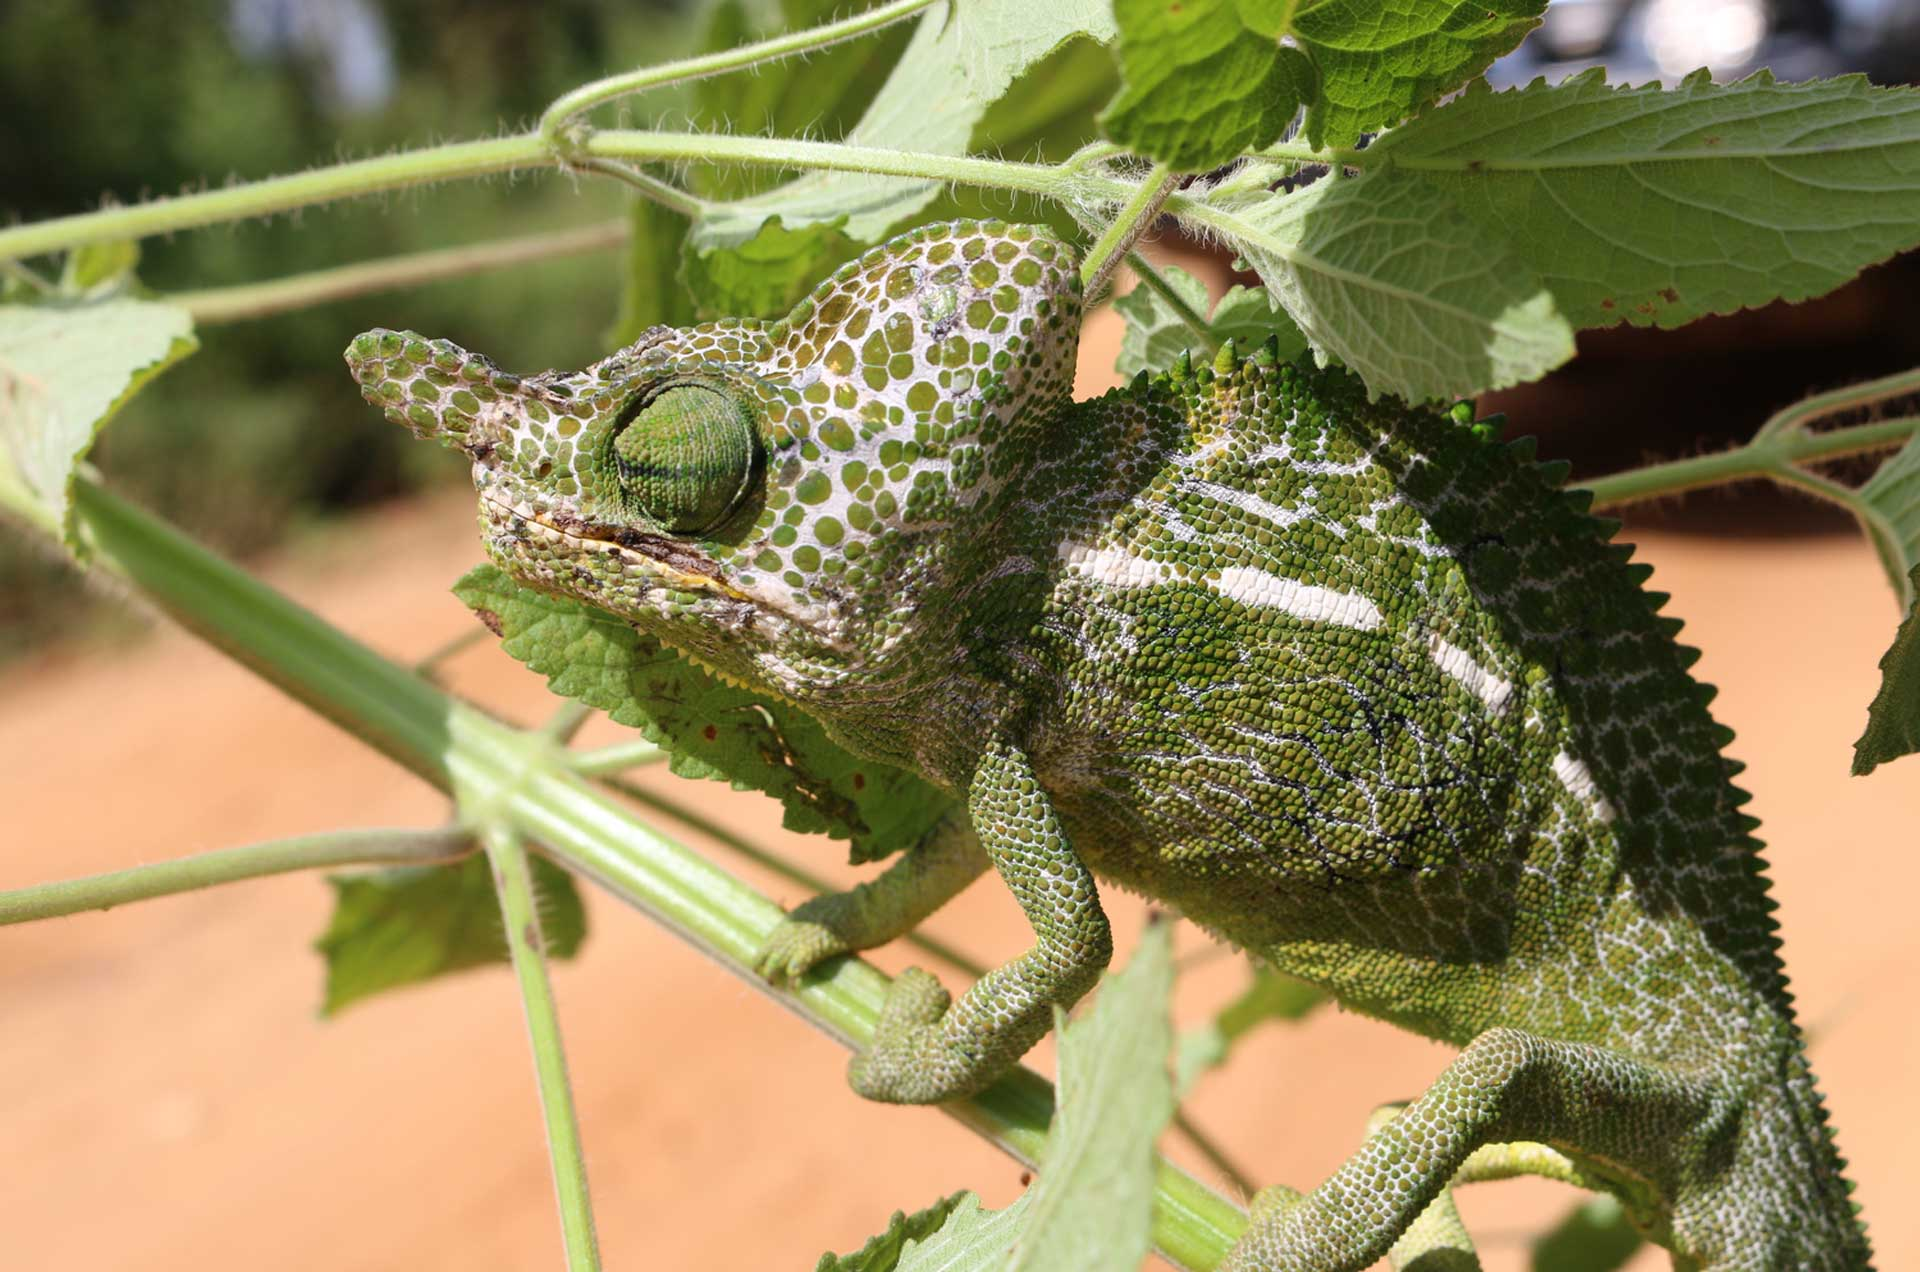 Labord's chameleon of Madagascar